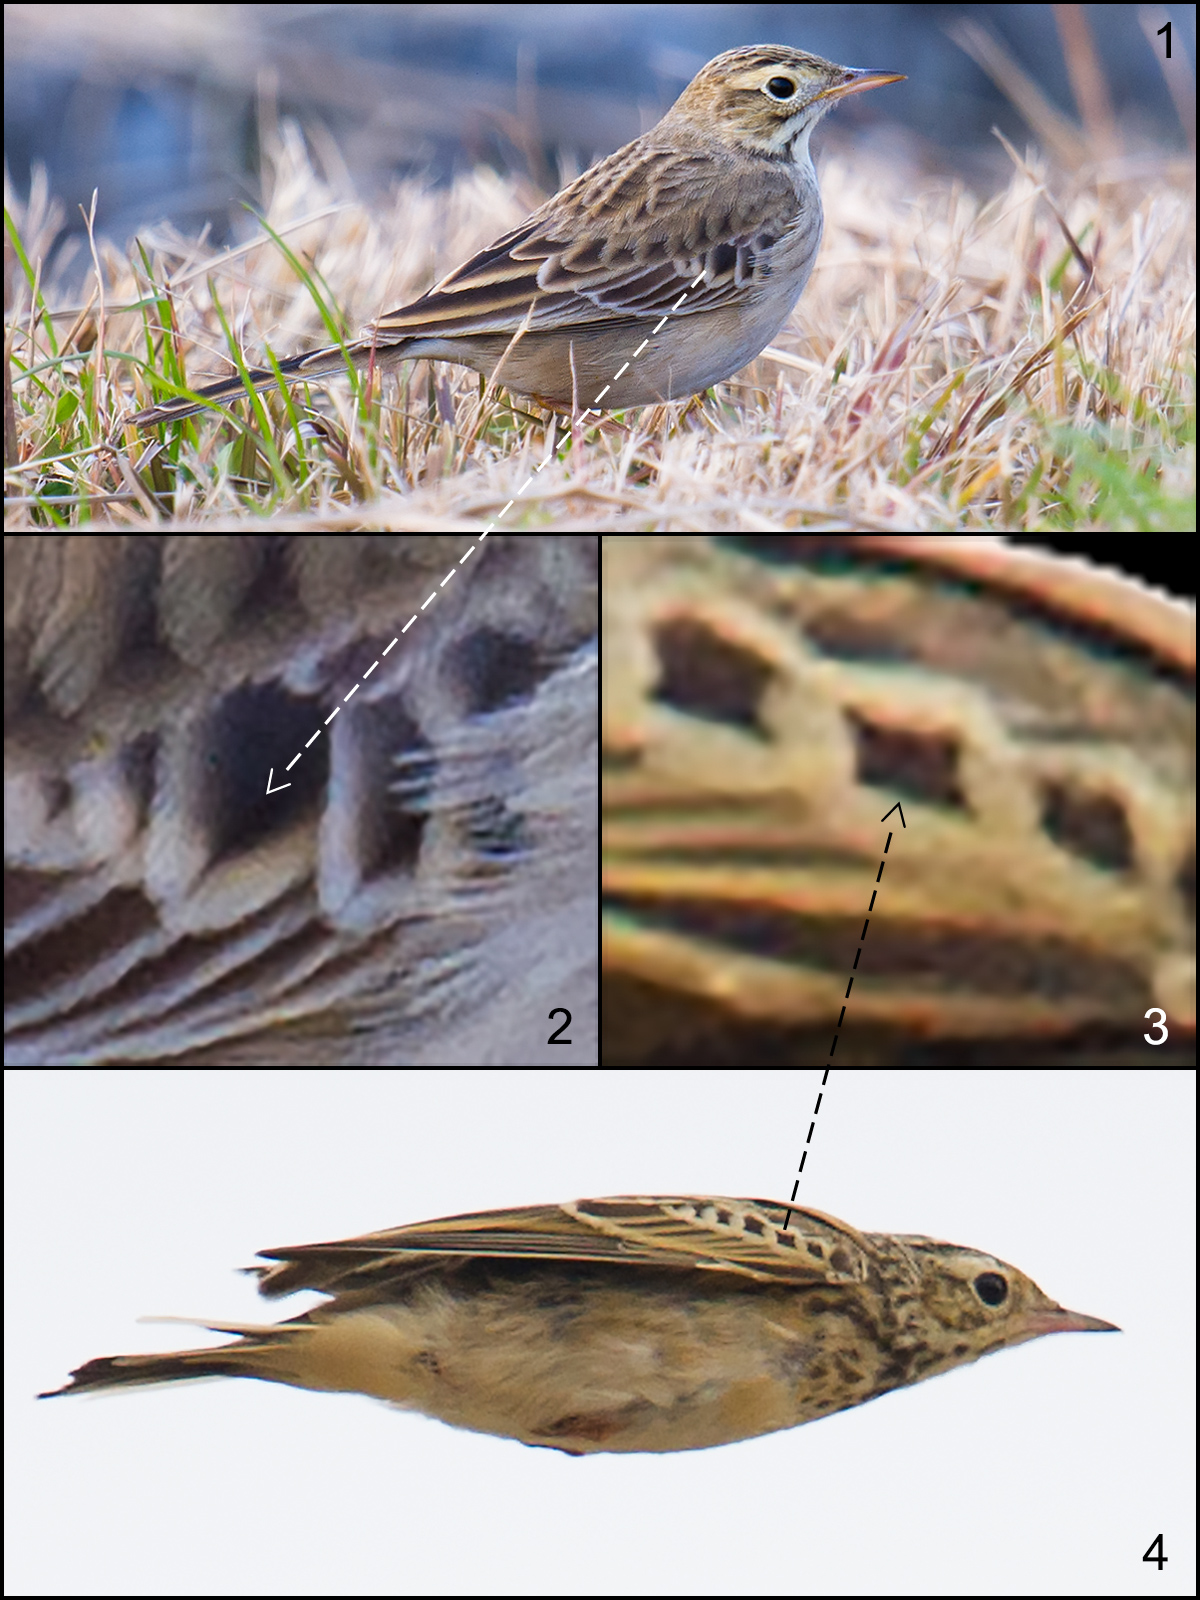 Comparison of pipits